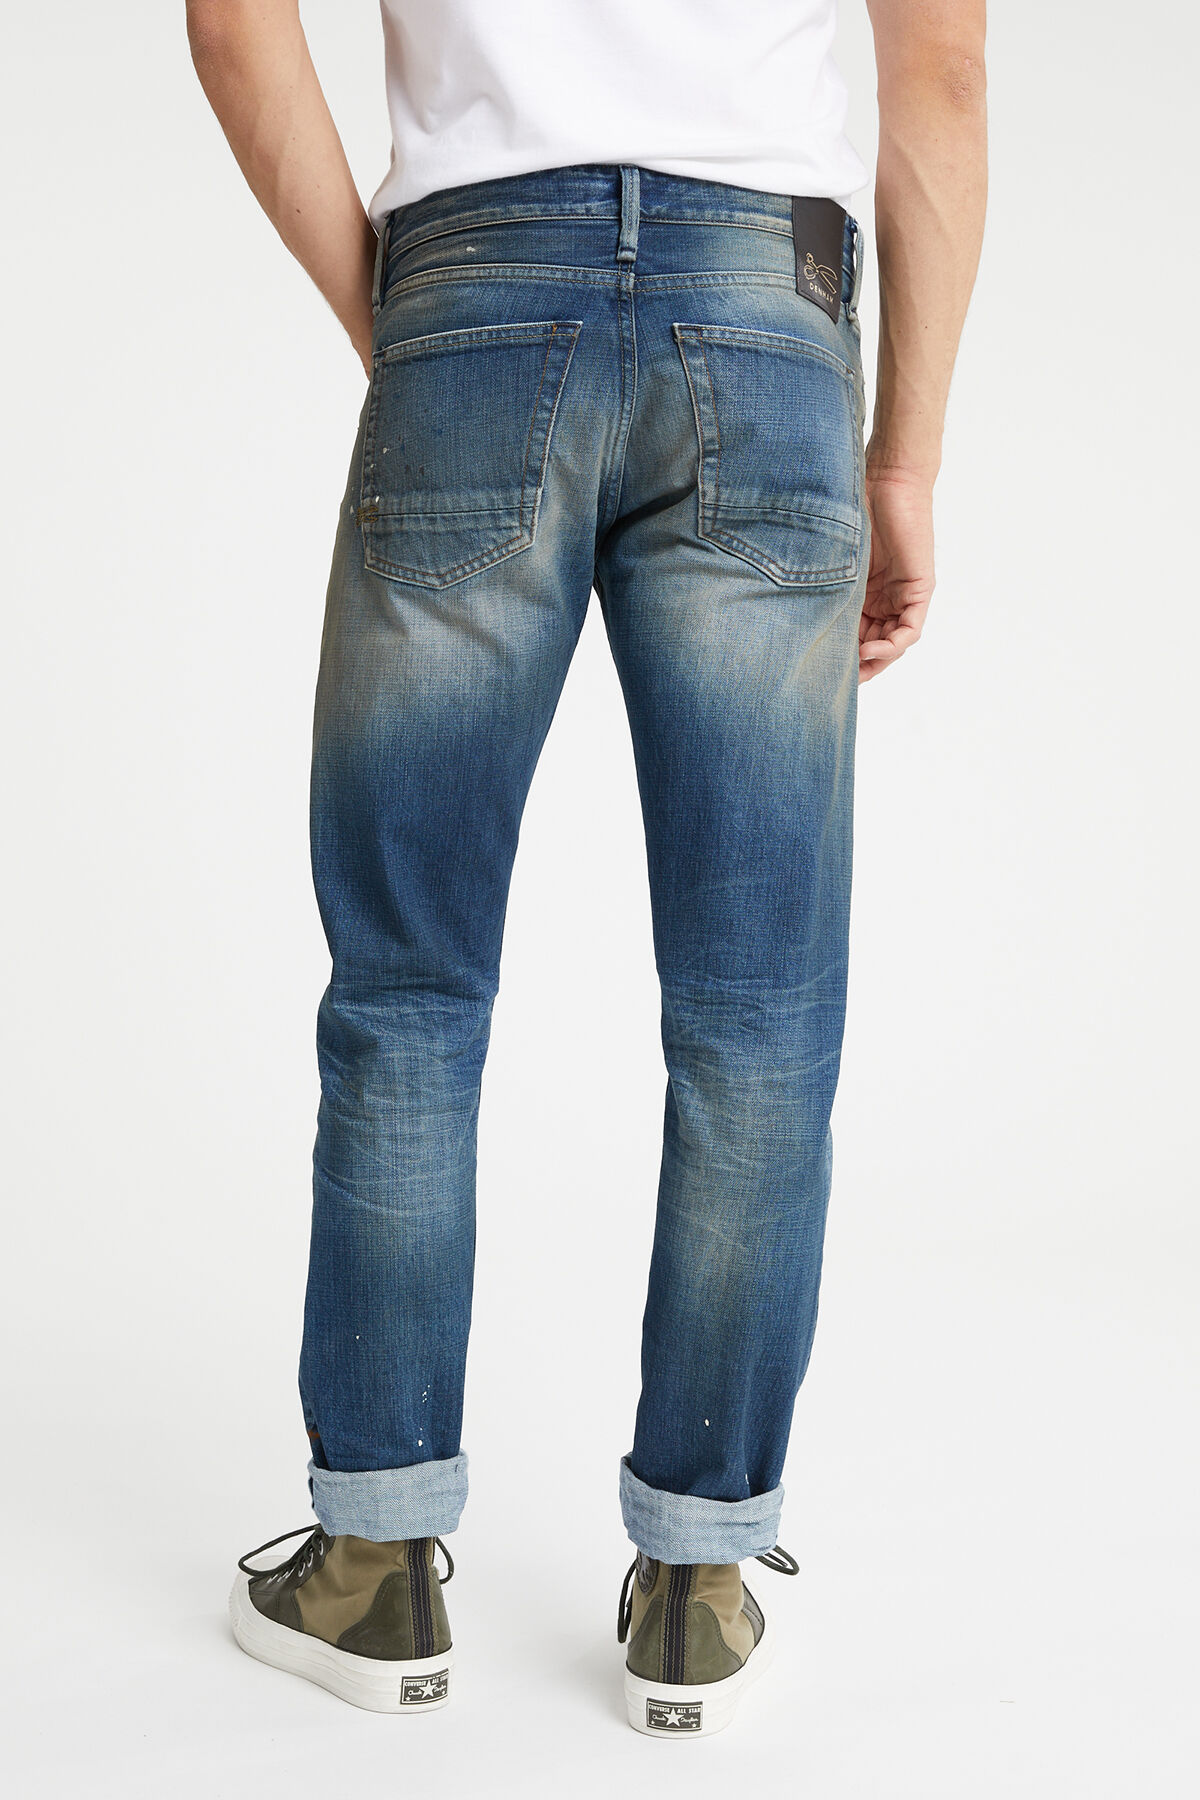 RAZOR Paint Selvedge - Slim Fit